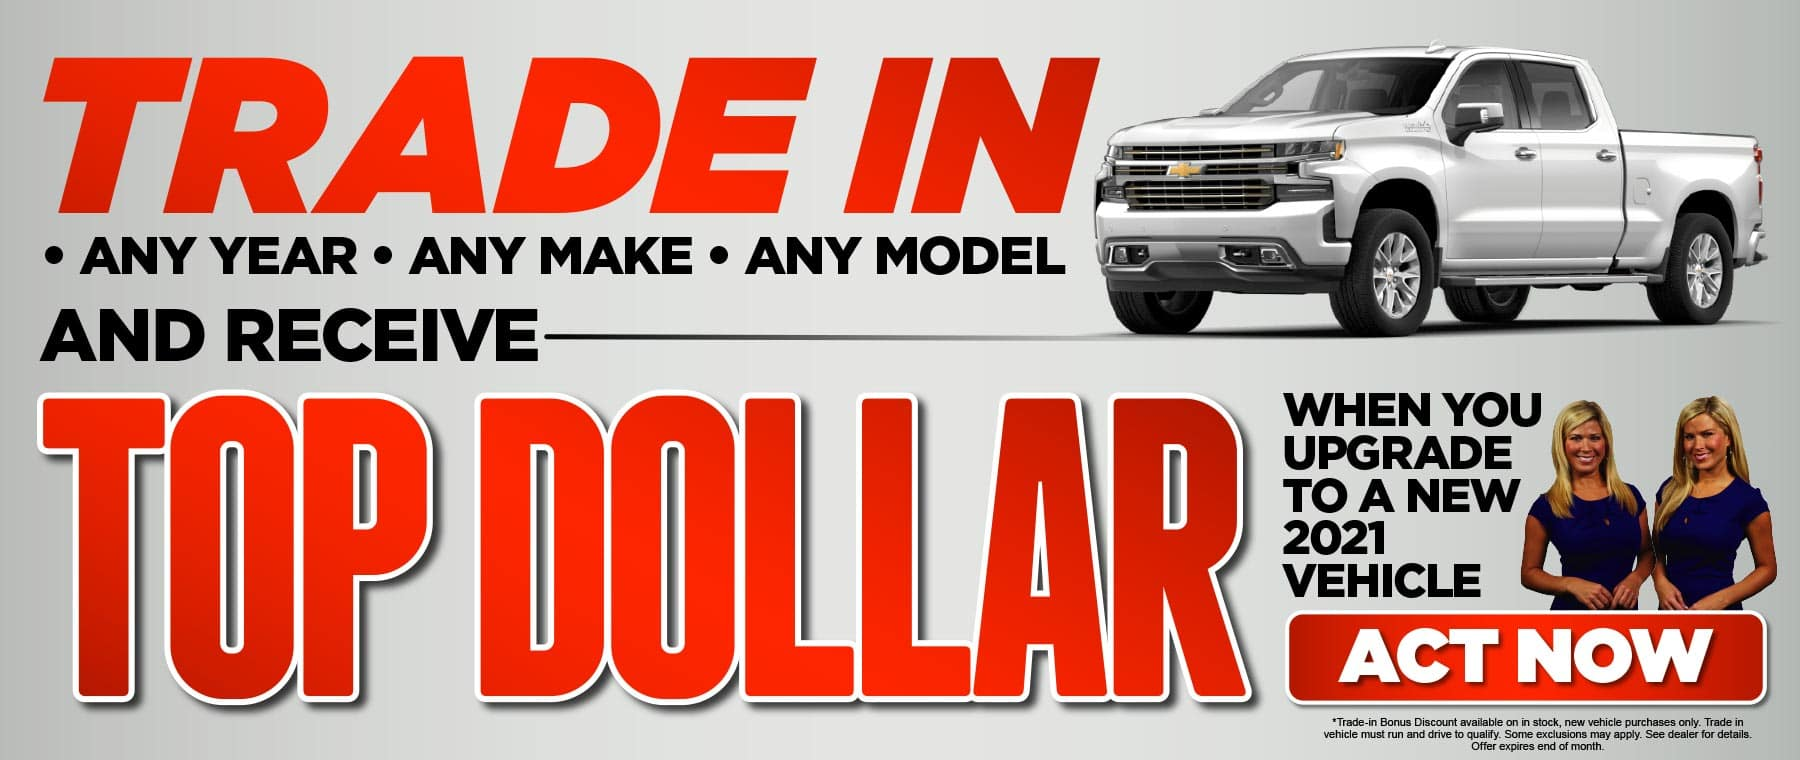 Trade in and receive TOP DOLLAR* - ACT NOW